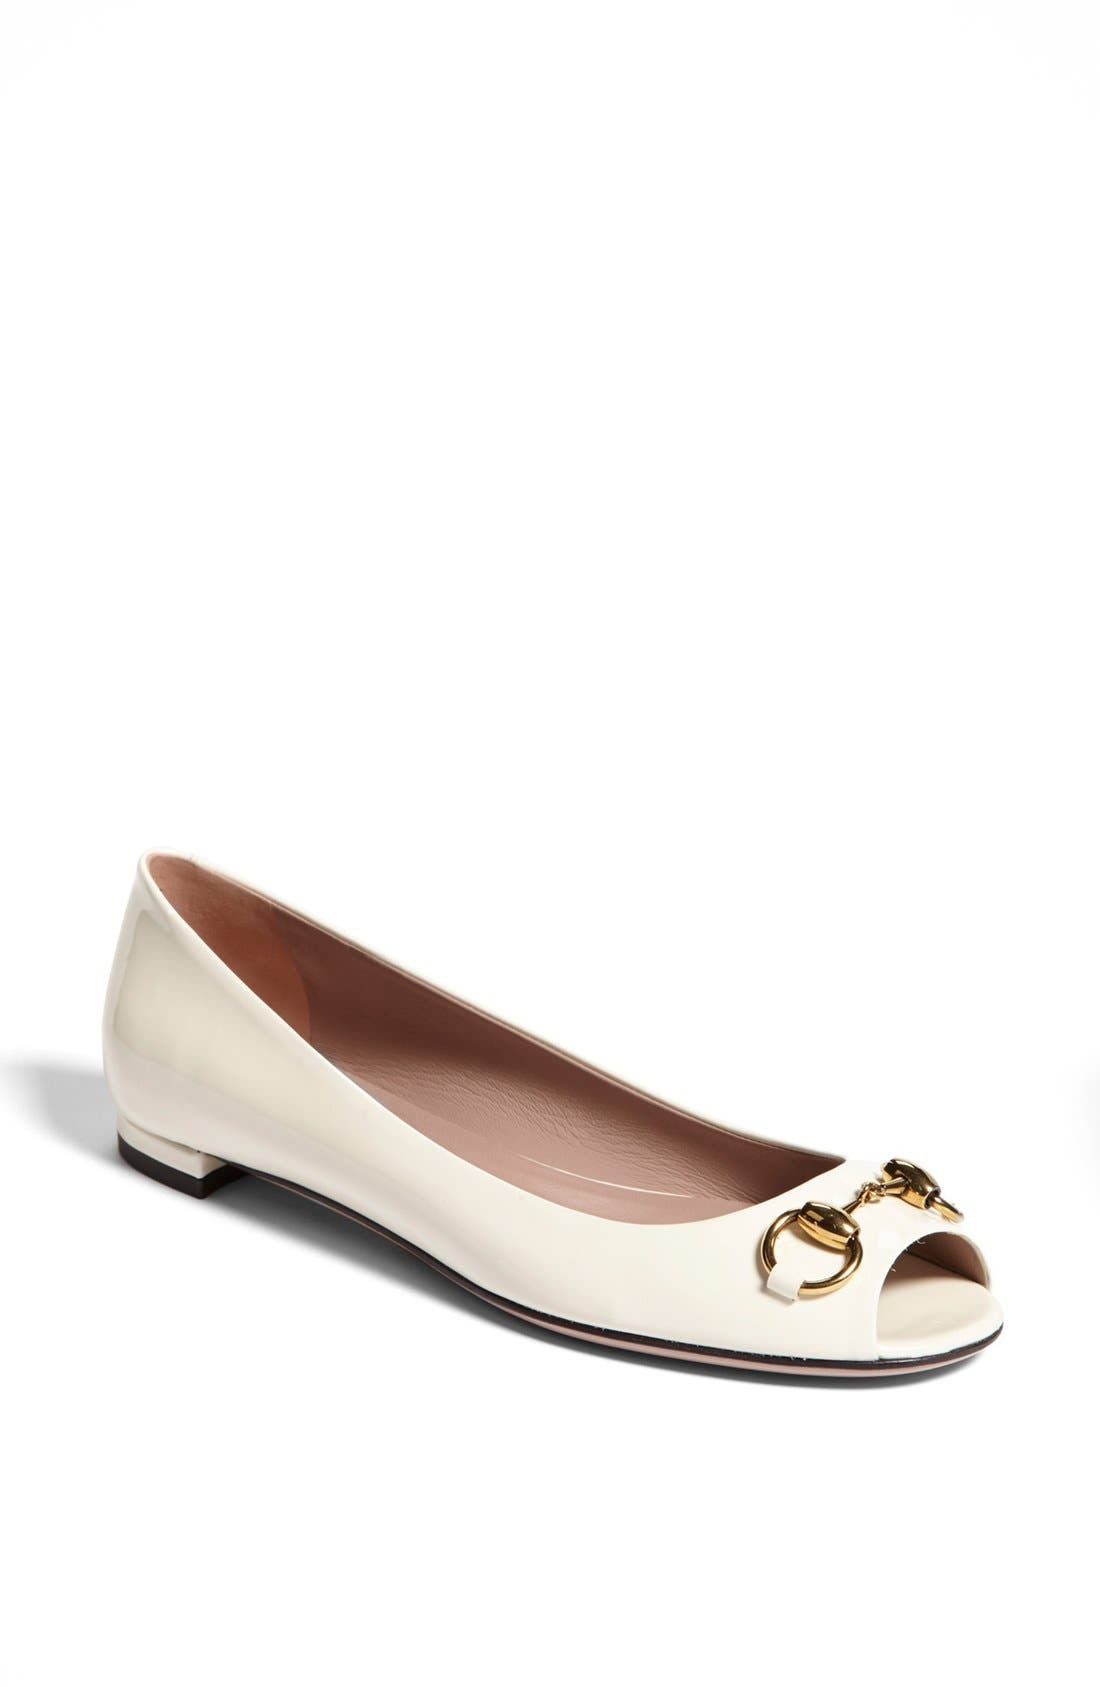 Alternate Image 1 Selected - Gucci 'Jolene' Horse Bit Peep Toe Ballet Flat